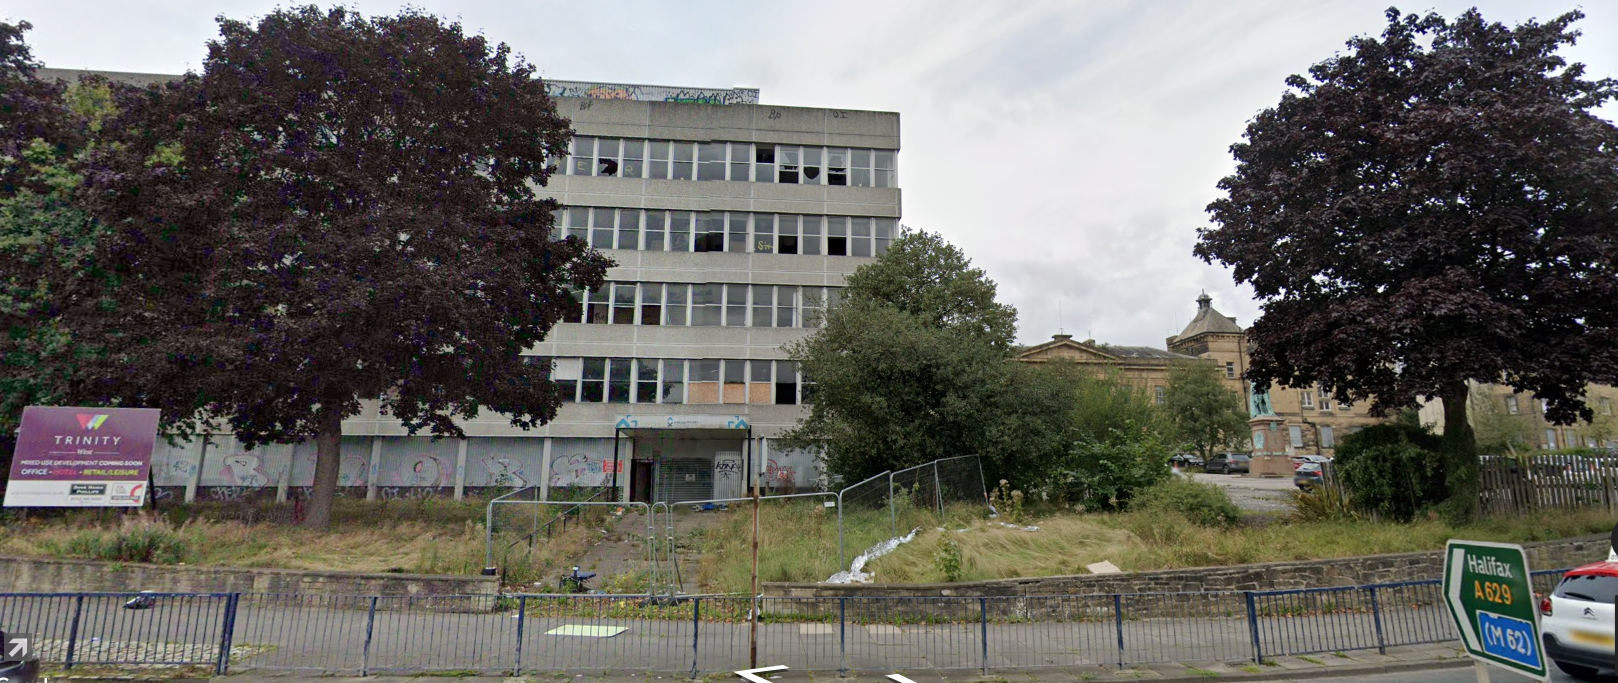 The vandalised former Kirklees College site.